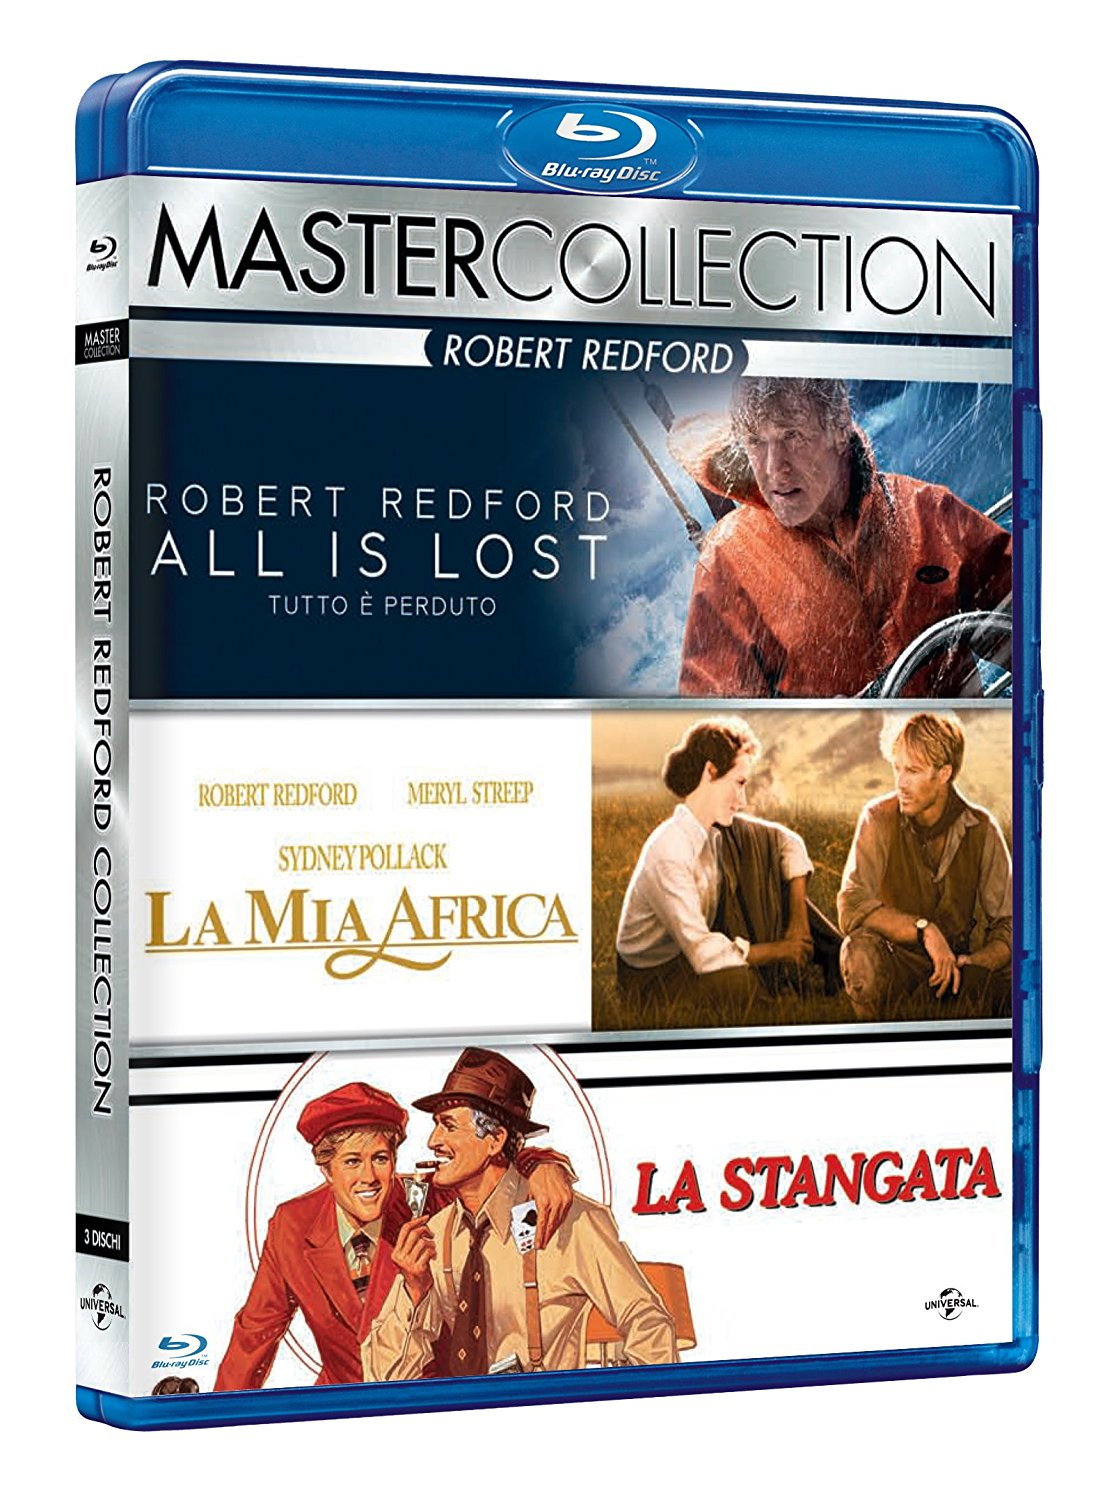 COF.ROBERT REDFORD MASTER COLLECTION (3 BLU-RAY)